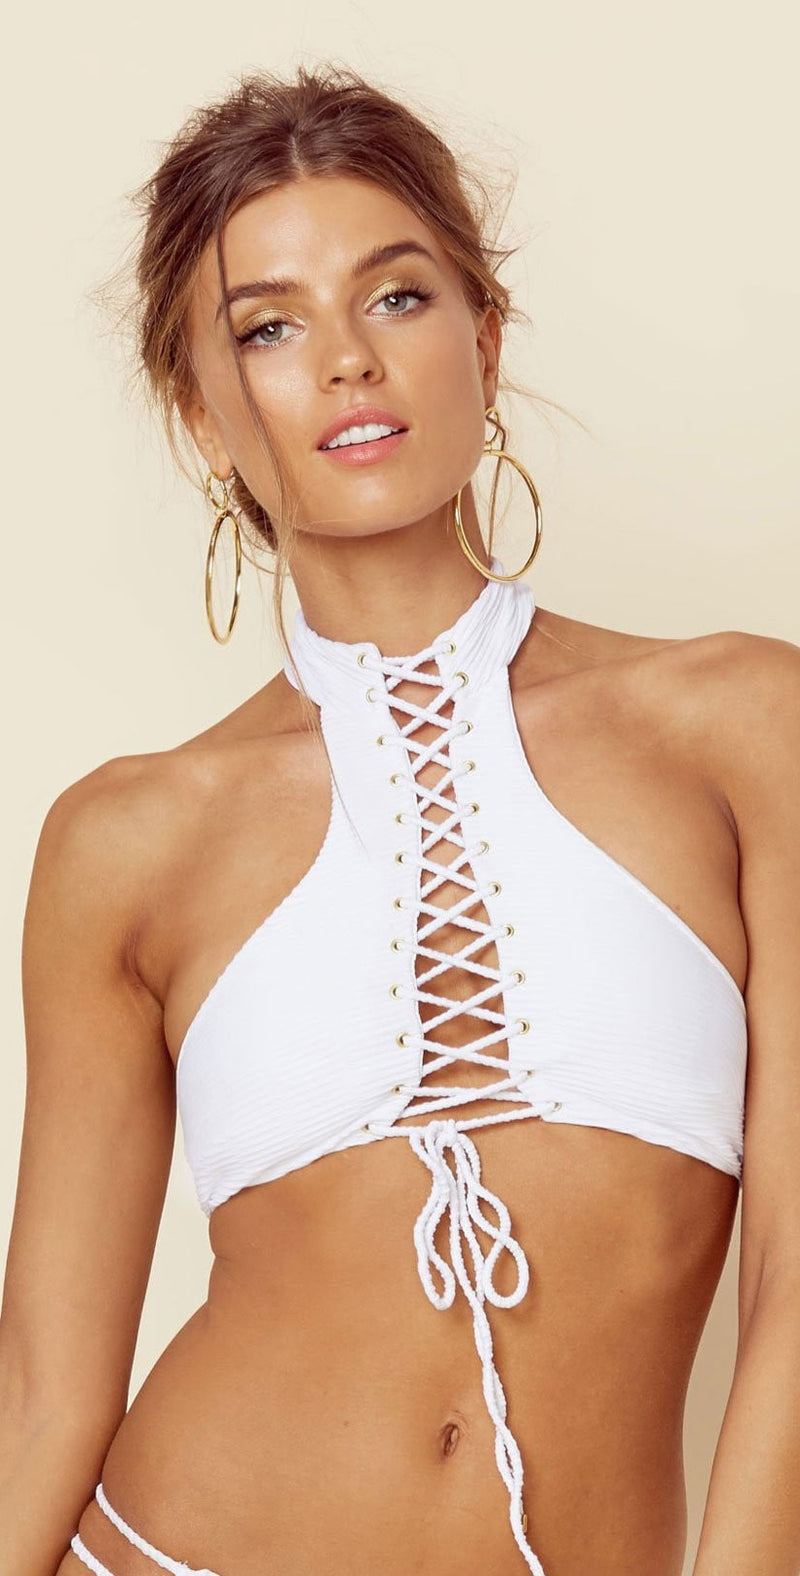 Blue Life Vixen Halter Top in White Jacquard 390-2516-WHT: